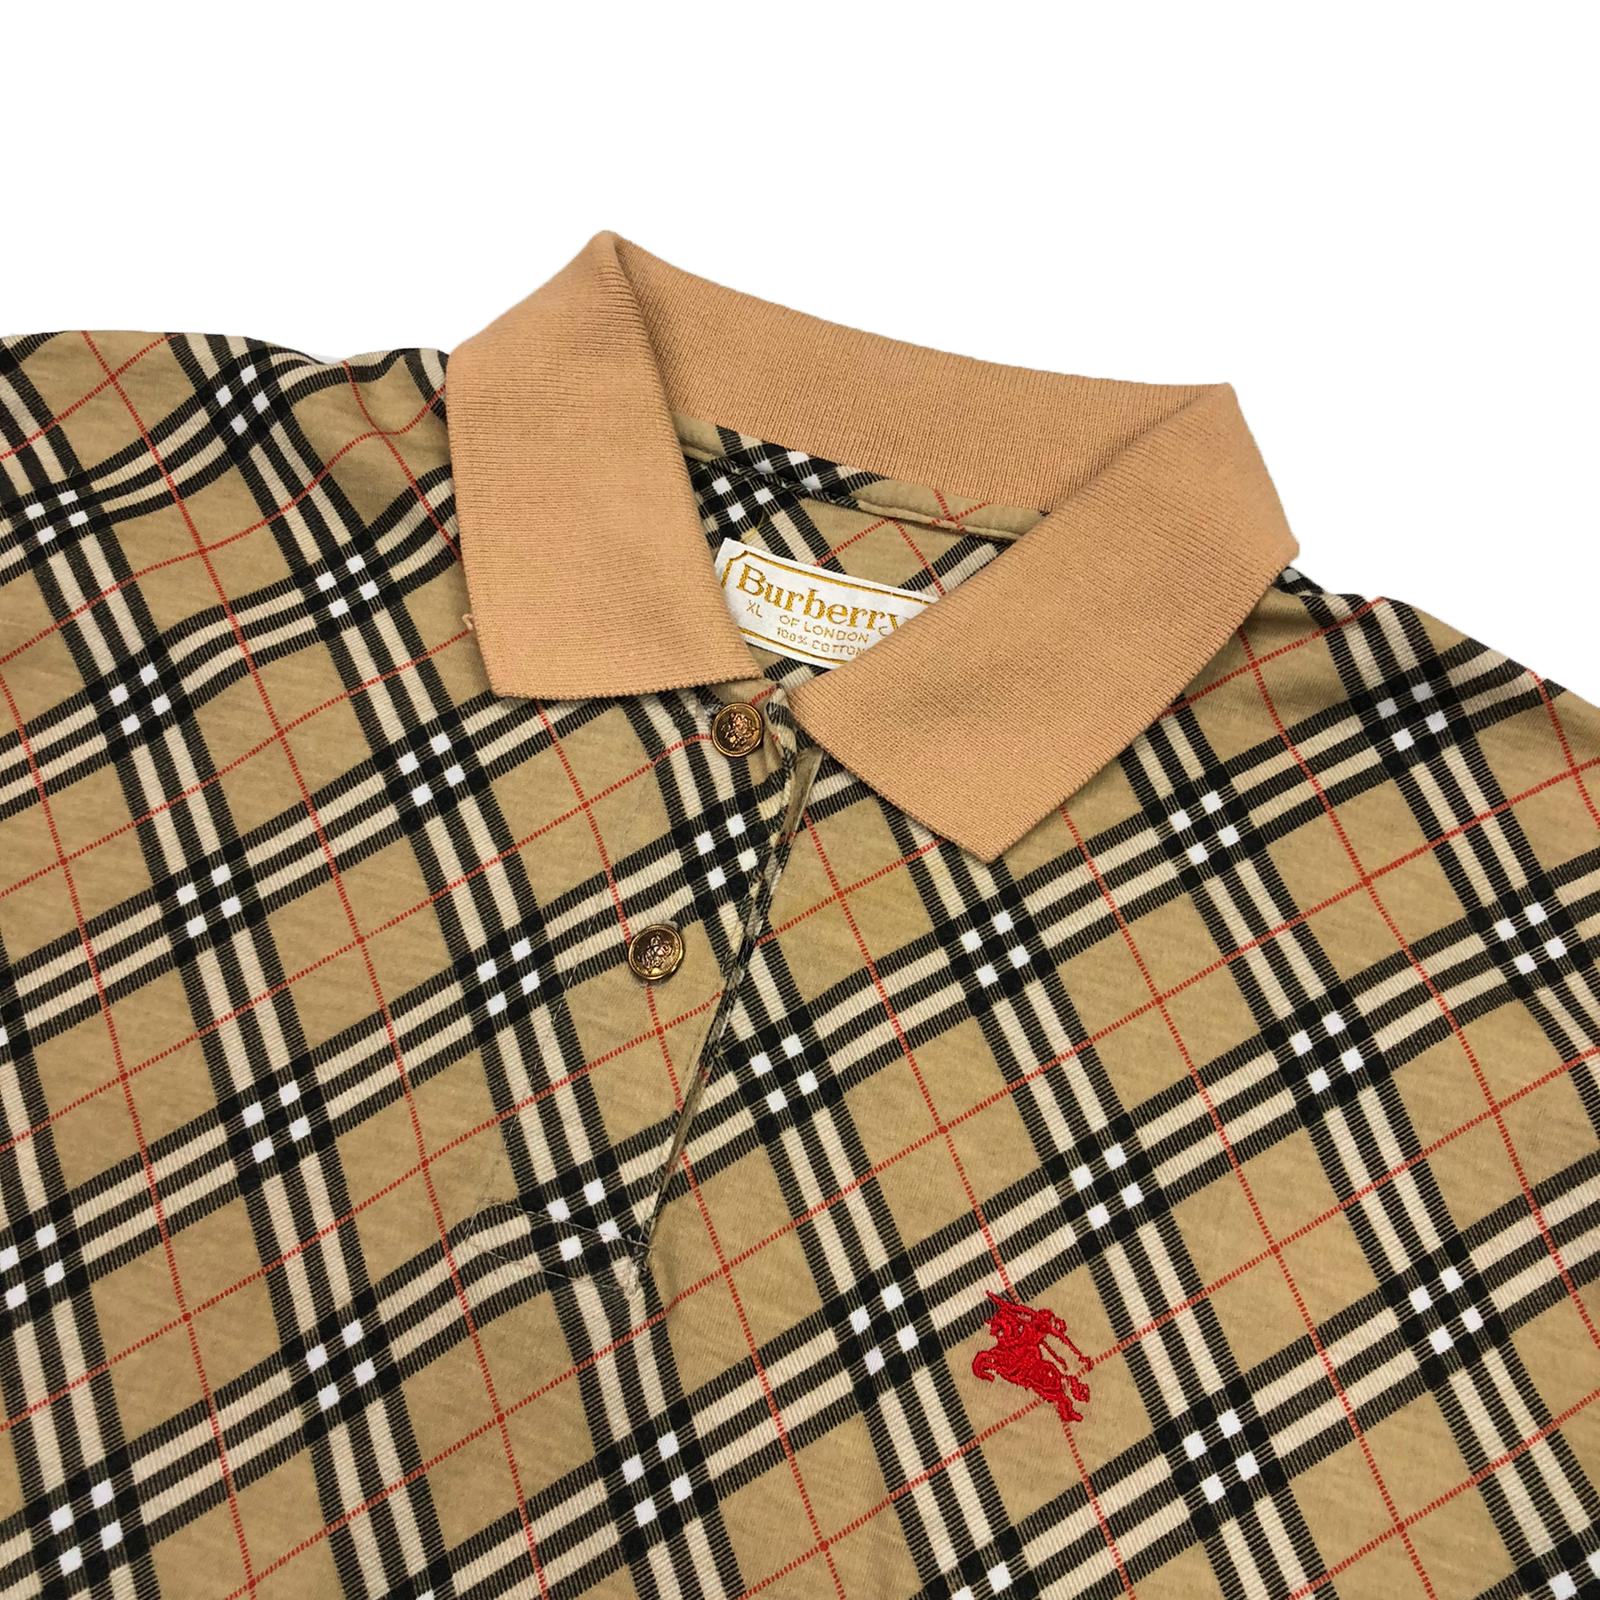 Women's Burberry polo shirt